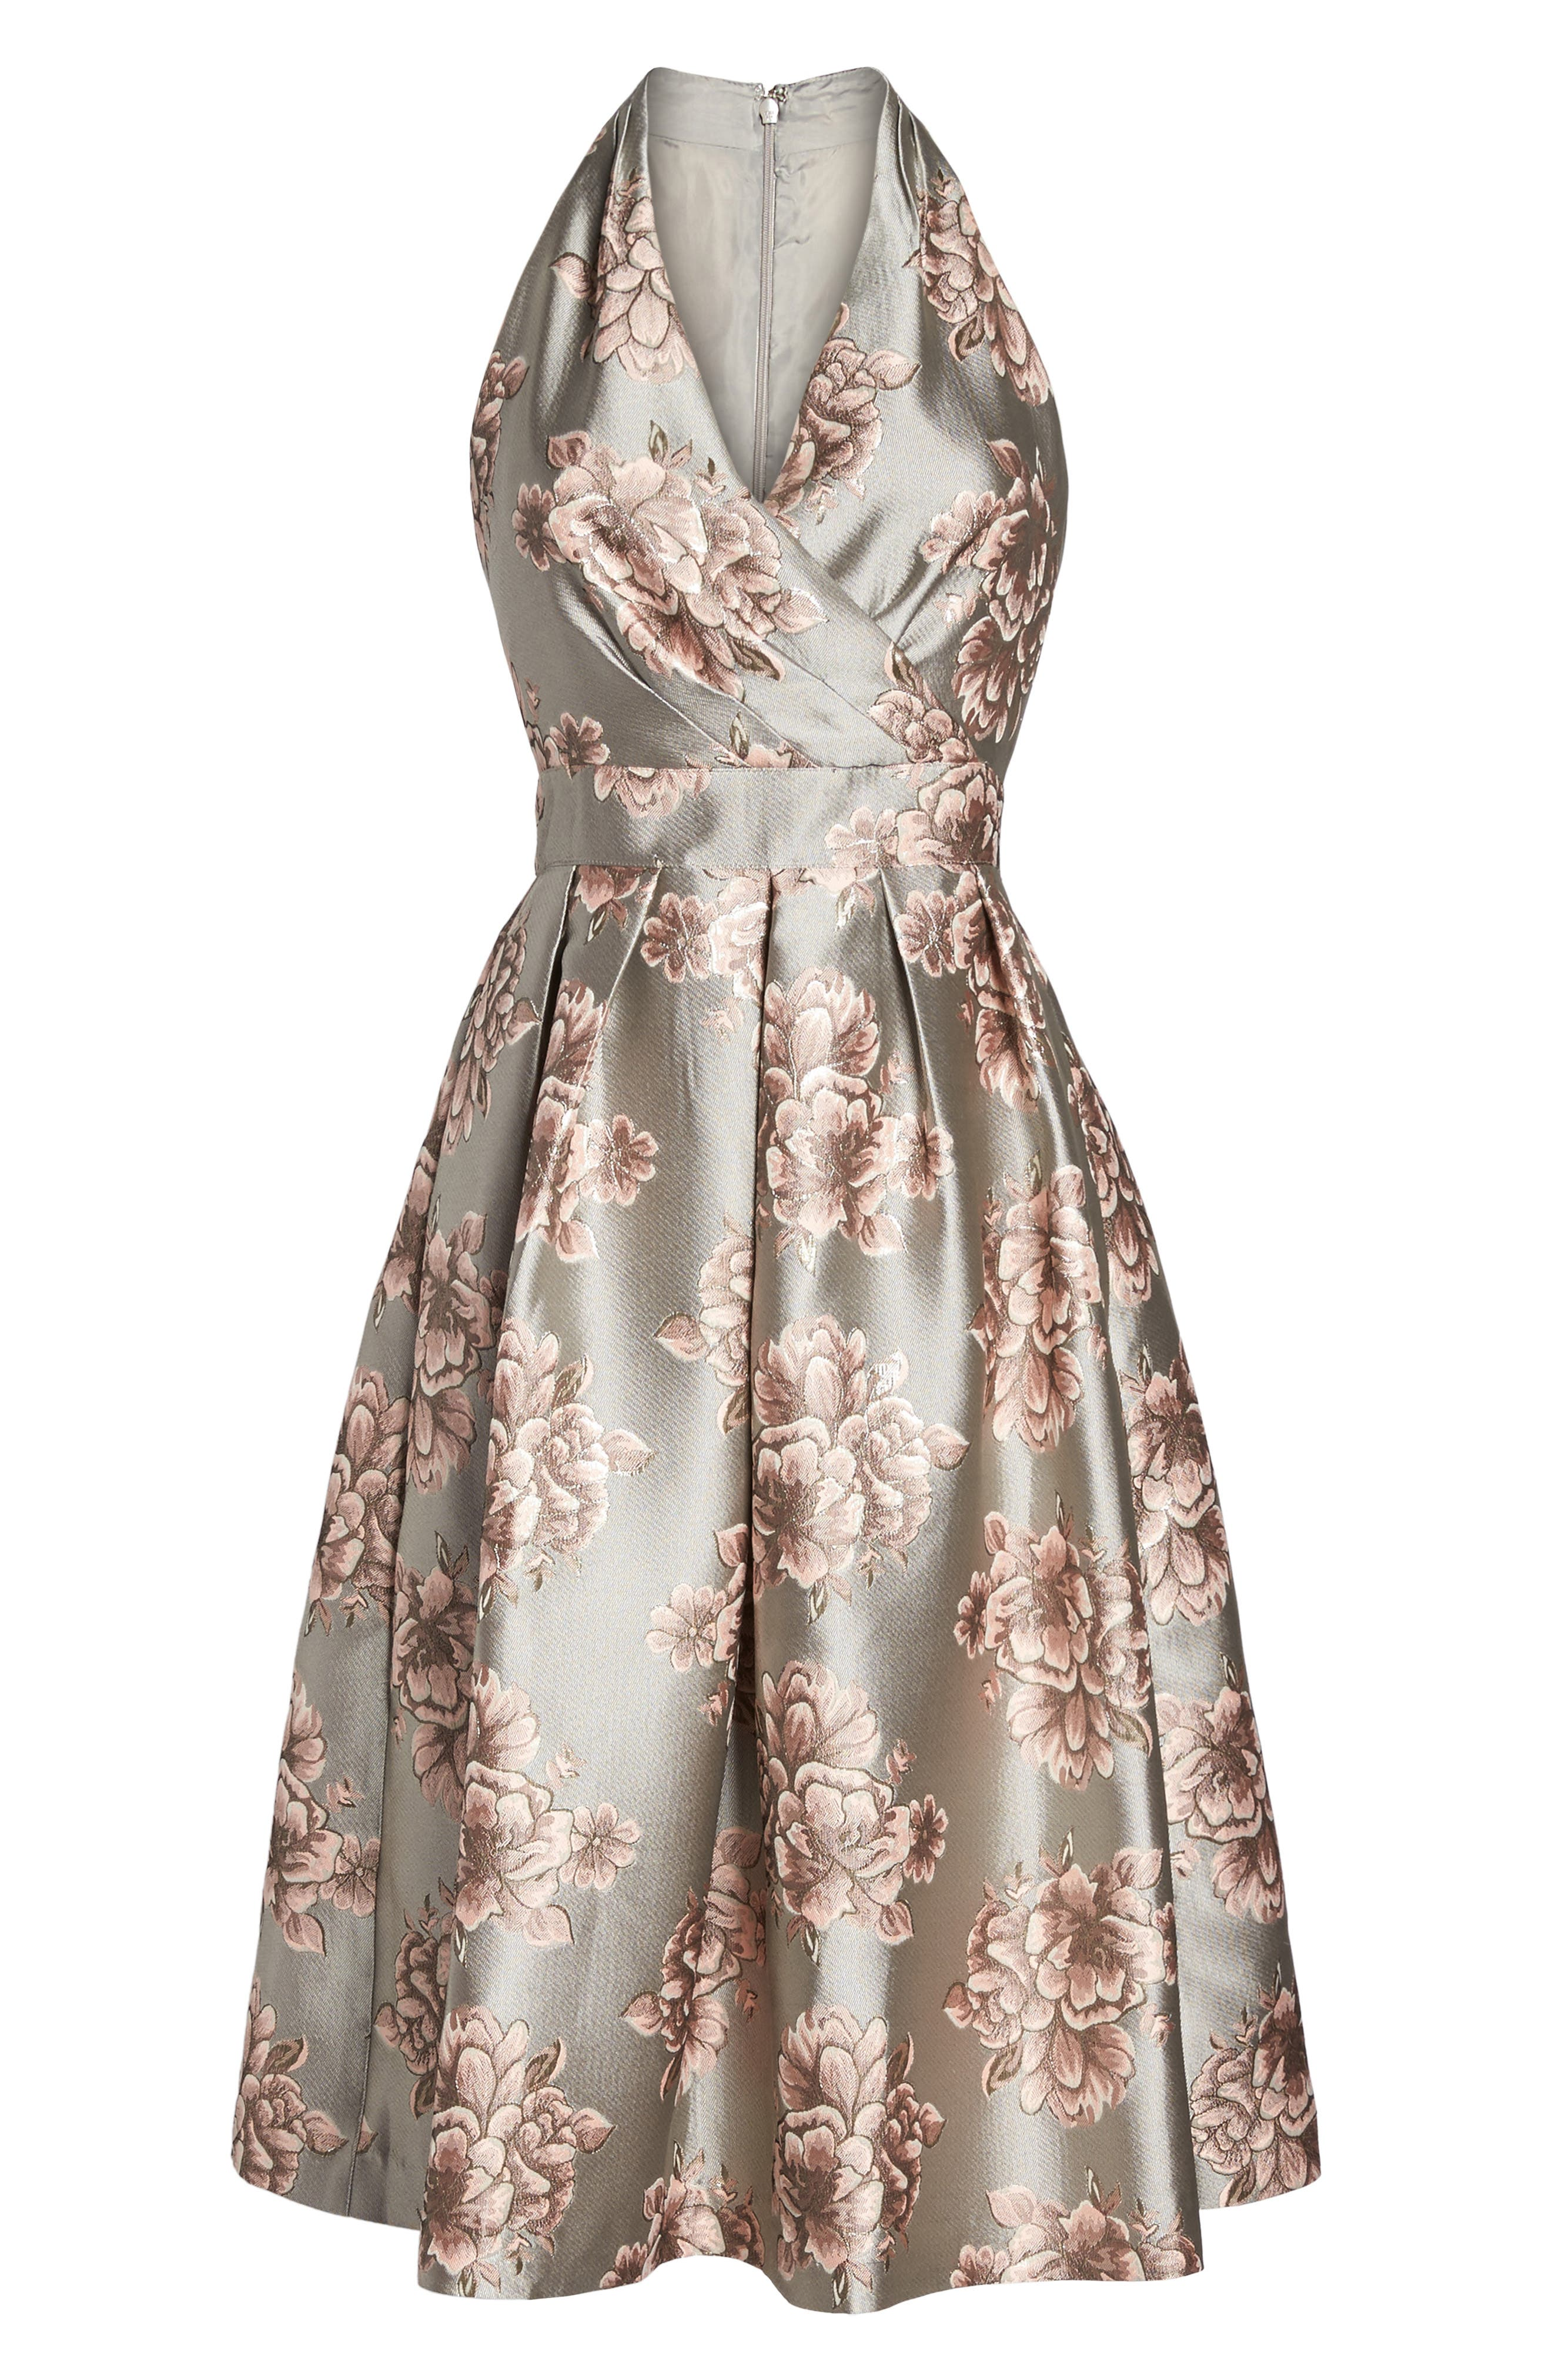 Metallic Floral Fit & Flare Dress,                             Alternate thumbnail 6, color,                             Silver/ Blush